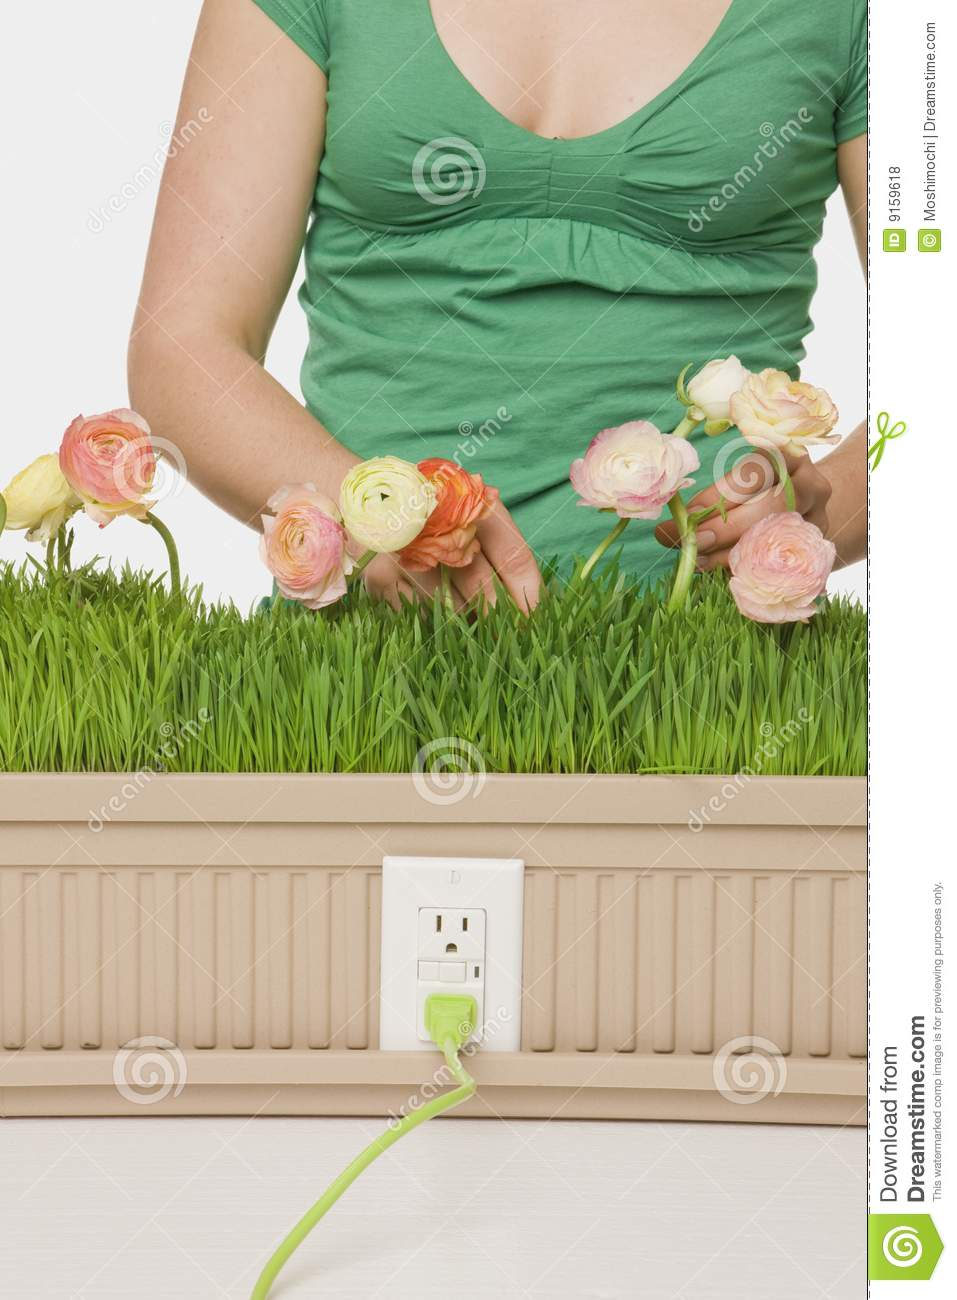 Planting For A Brighter Future Stock Photo Image Of Ideas